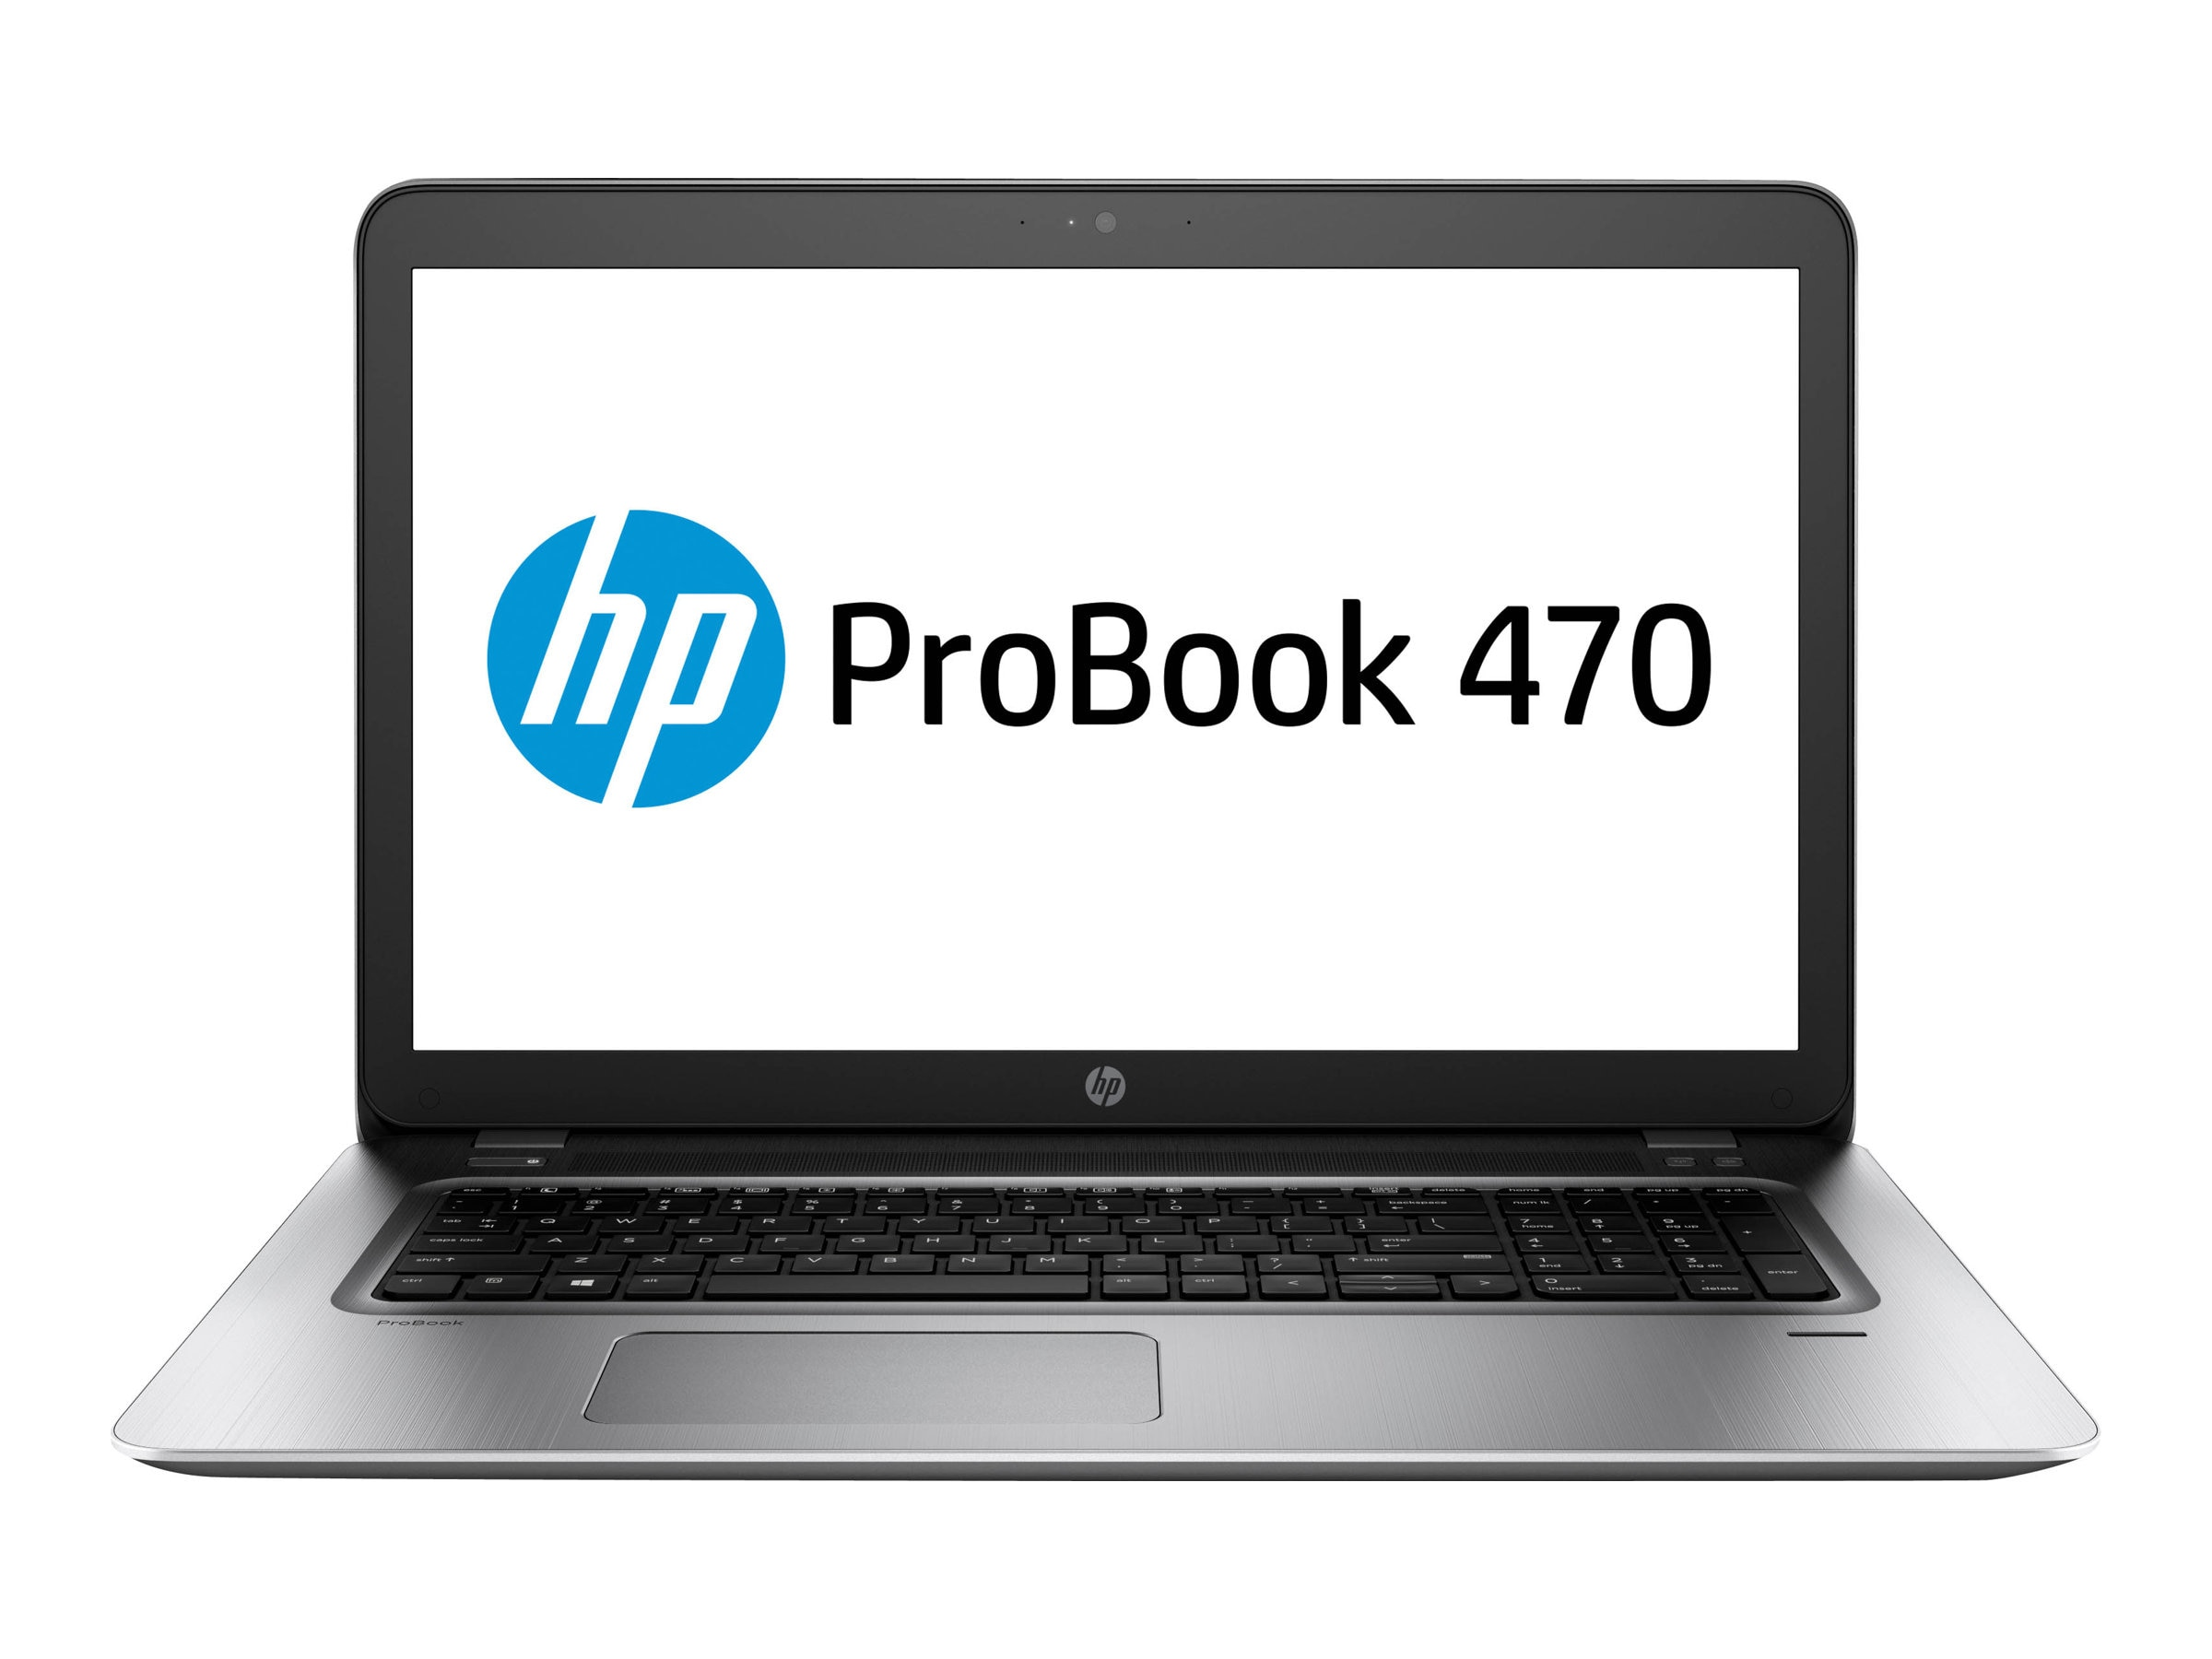 HP ProBook 470 G4 2.7GHz Core i7 17.3in display, Z1Z75UT#ABA